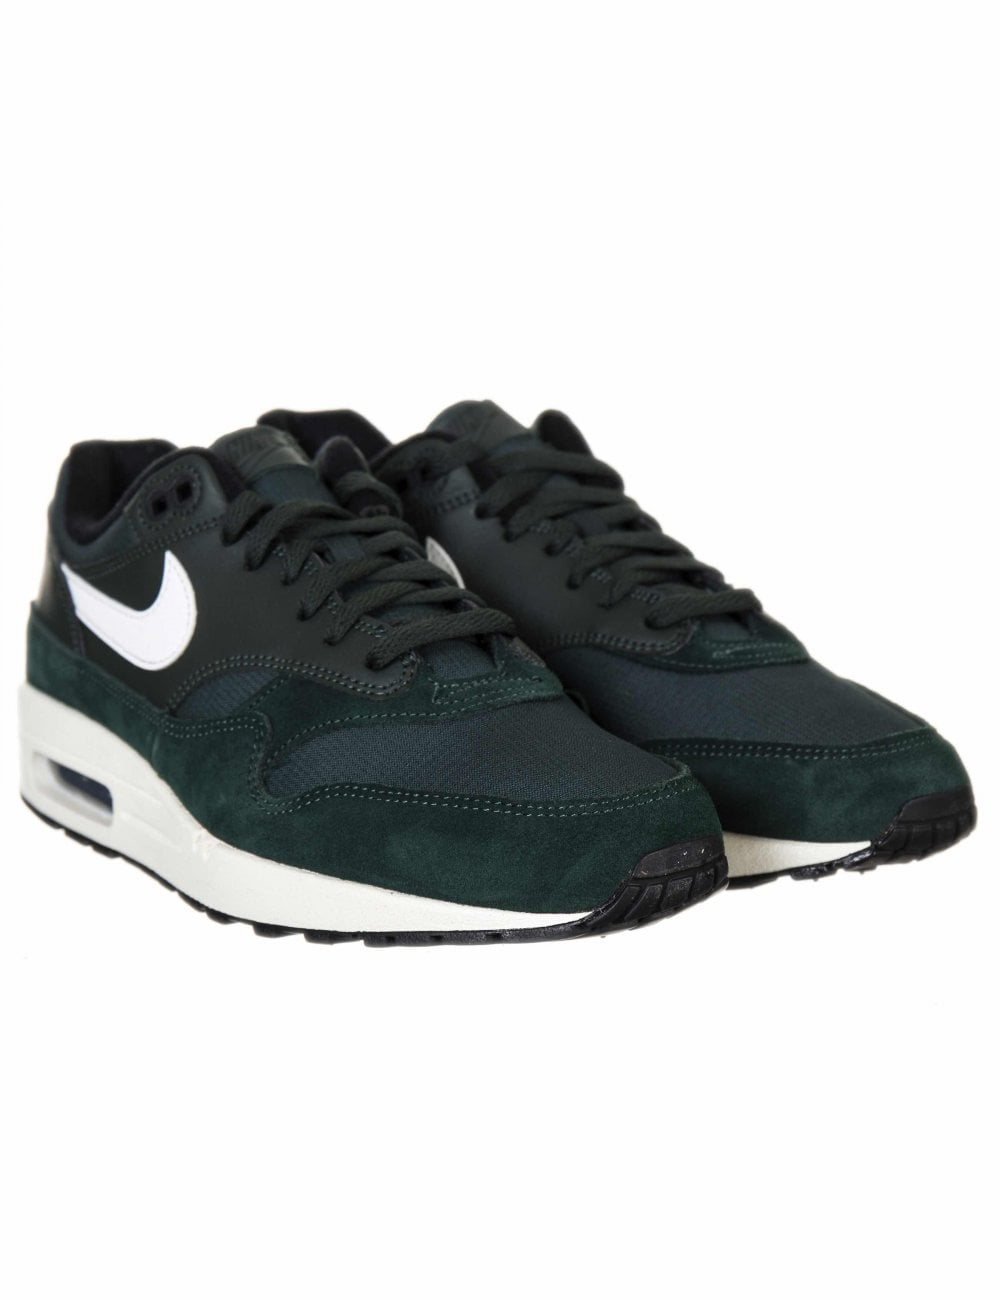 054786b4b4d18c Nike Air Max 1 Trainers - Outdoor Green Sail - Footwear from Fat ...